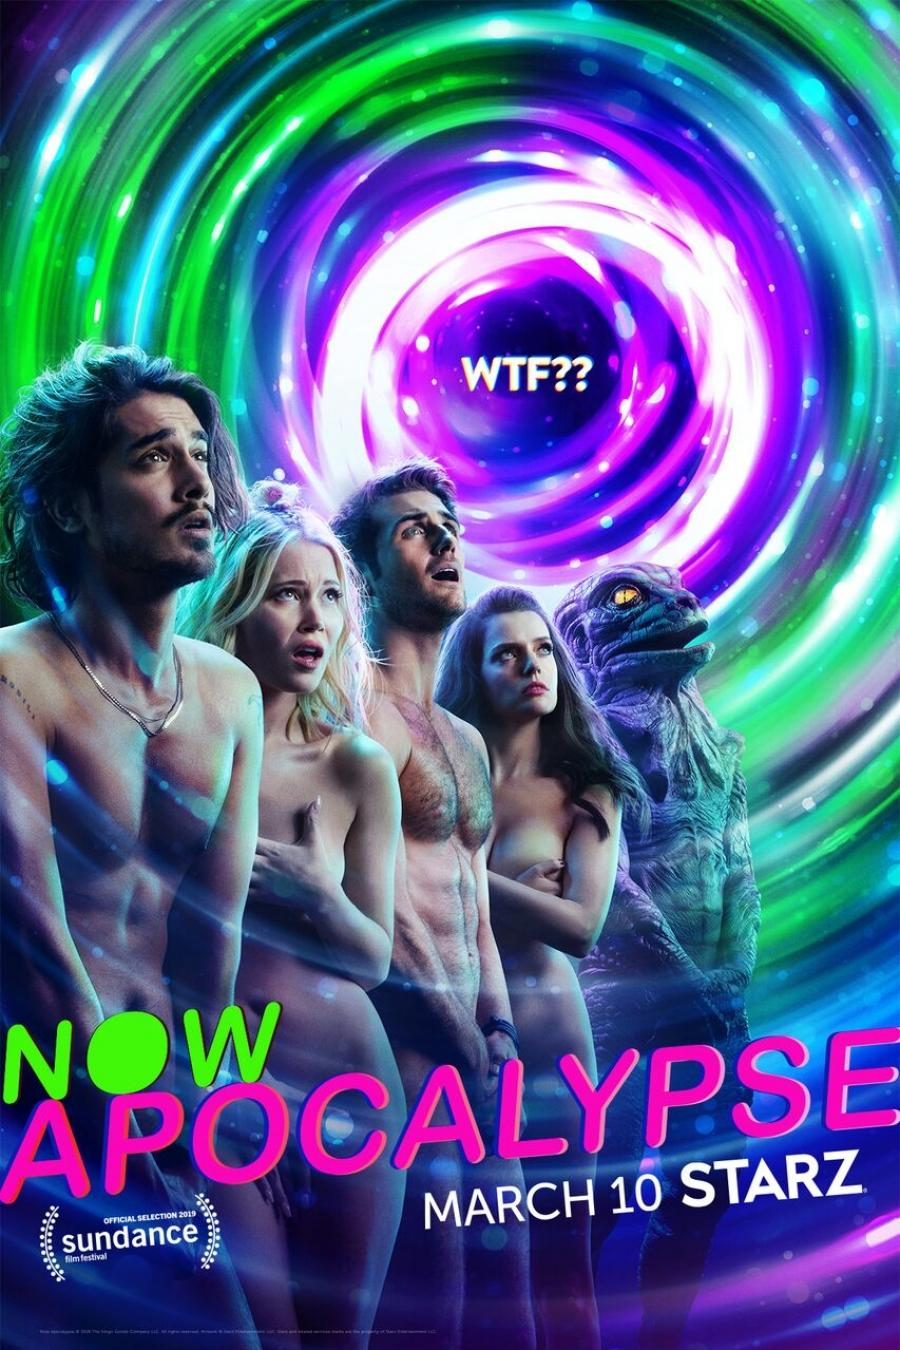 Now Apocalypse (TV Series 2019) - IMDb